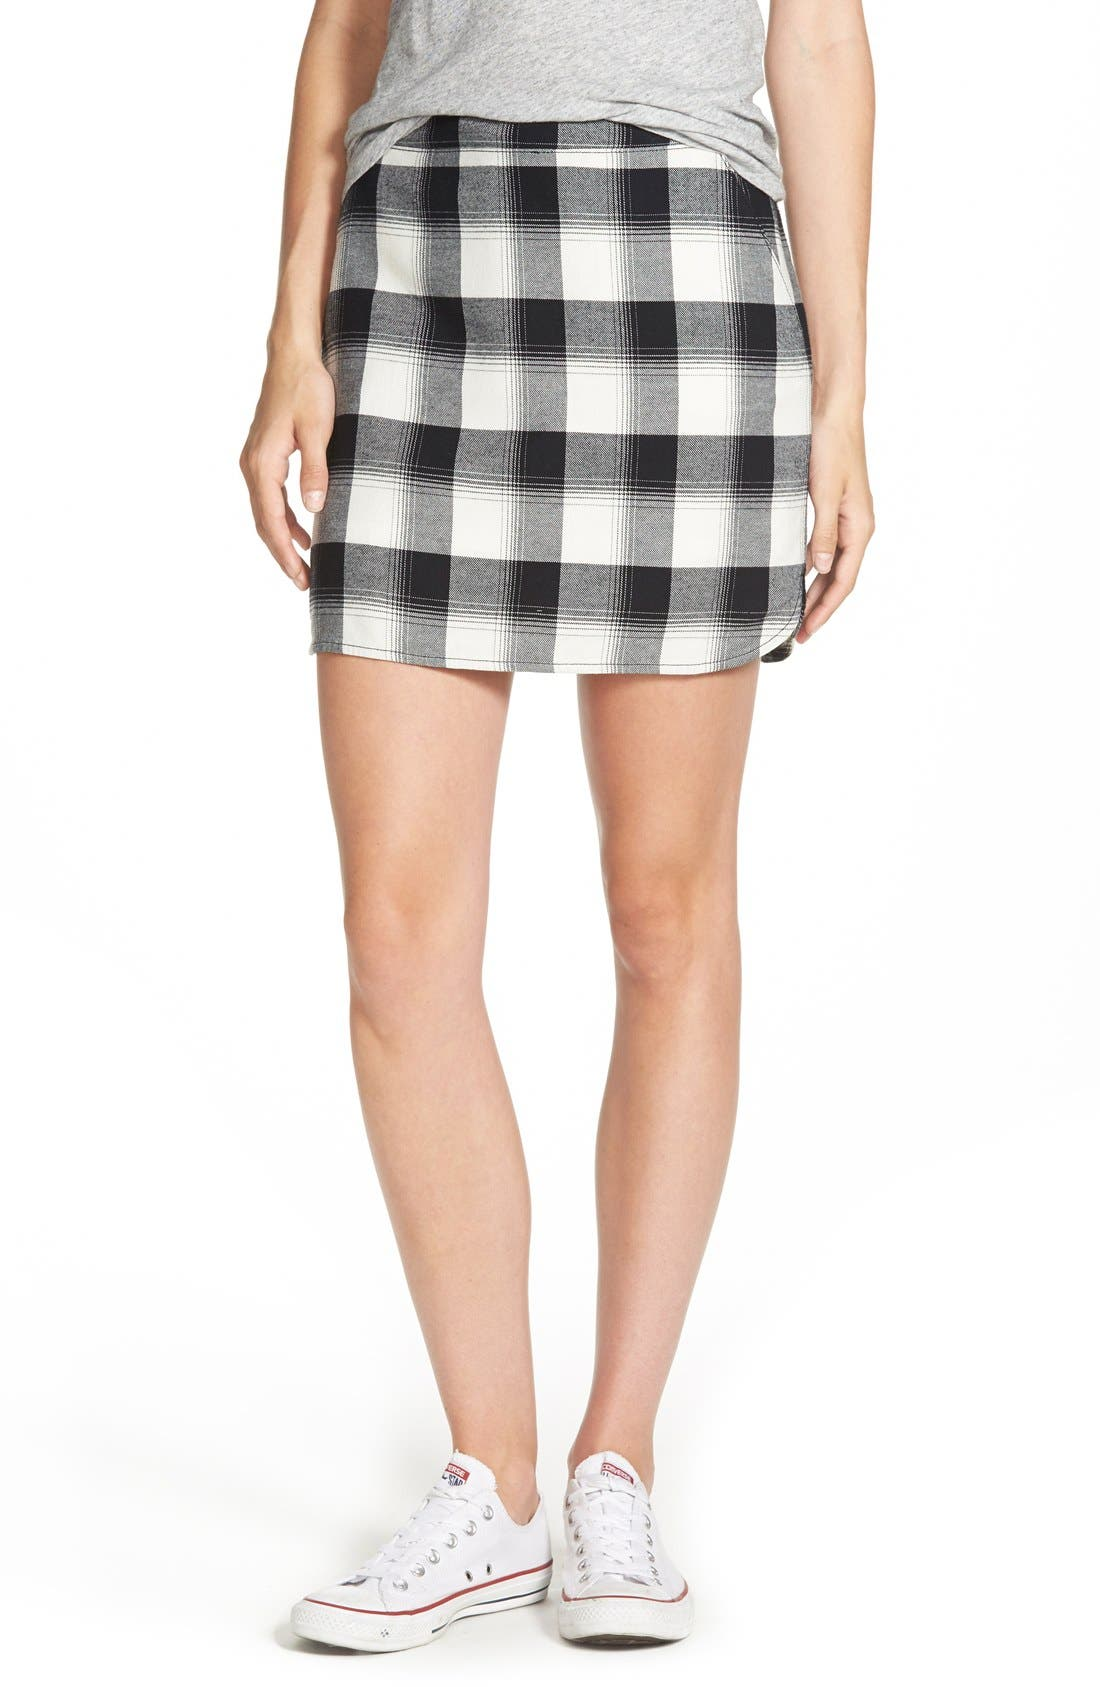 Alternate Image 1 Selected - Treasure&Bond Plaid Miniskirt